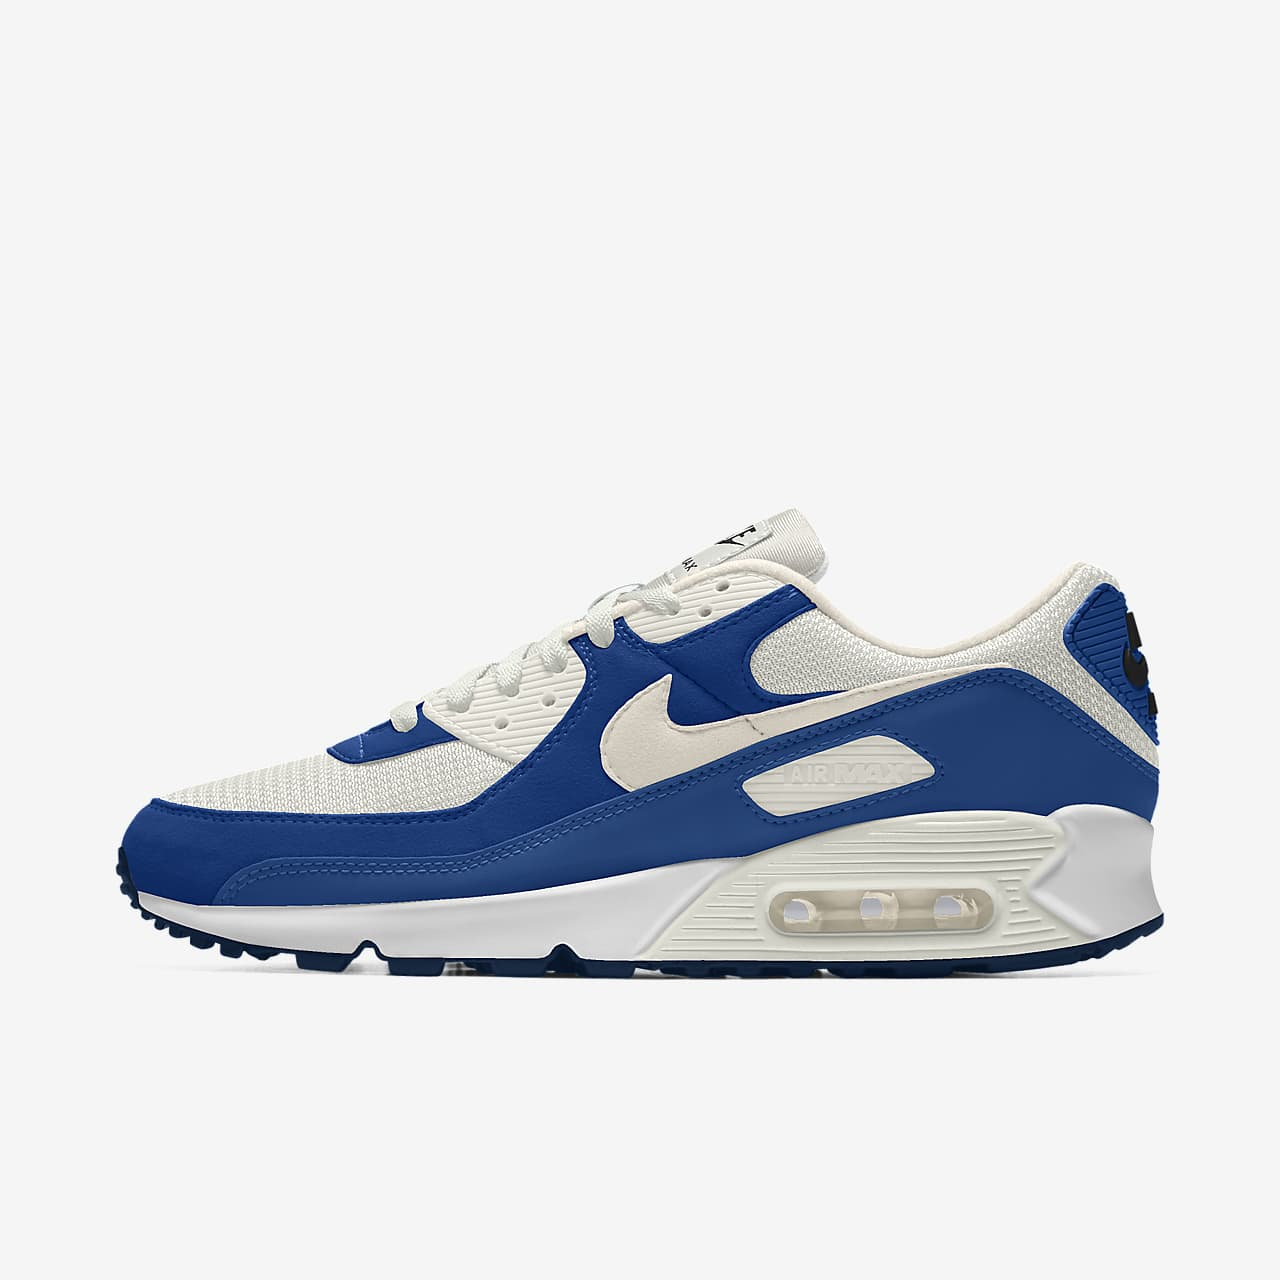 Nike Air Max 90 By You 專屬訂製男鞋